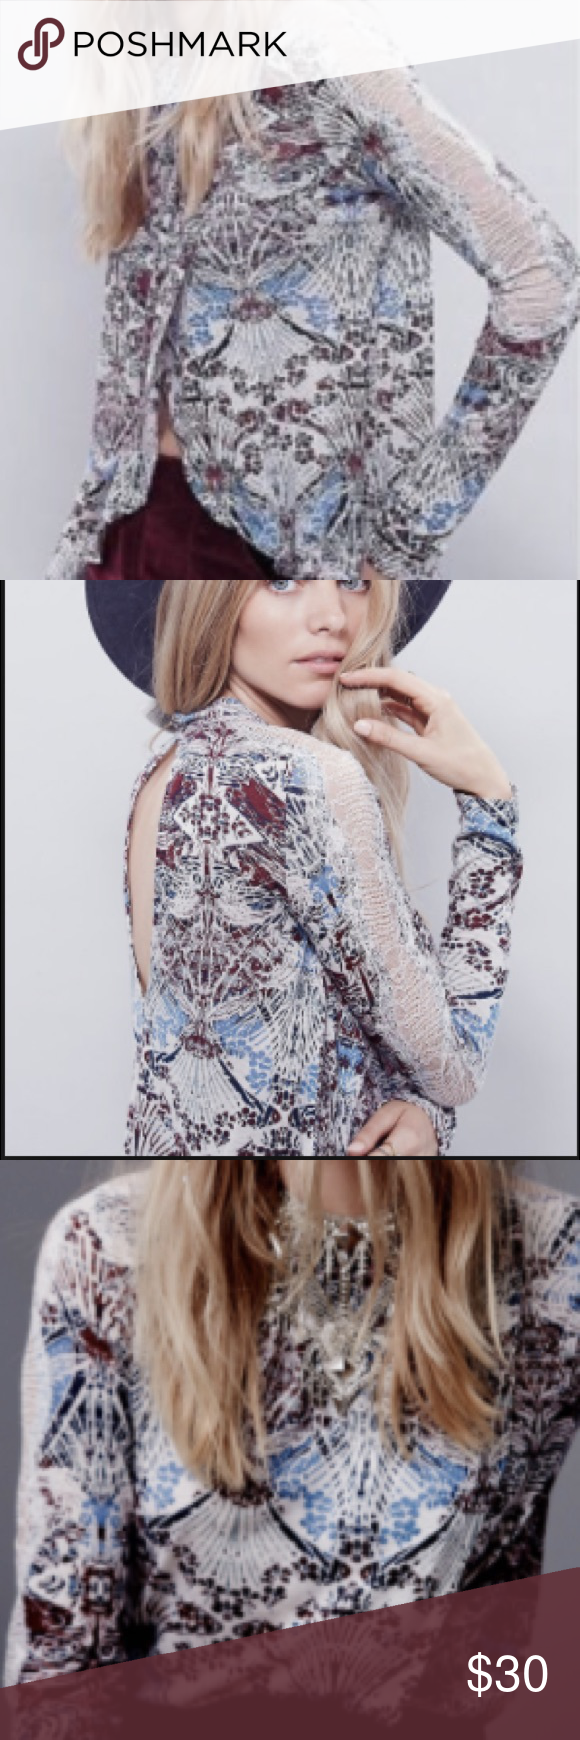 Free People New World jersey nouveau top Long sleeve top with lace details on sleeve, keyhole detail on back and over lapping layers on the front, only worn twice. These are not my pics but I will be uploading mine soon Free People Tops Blouses